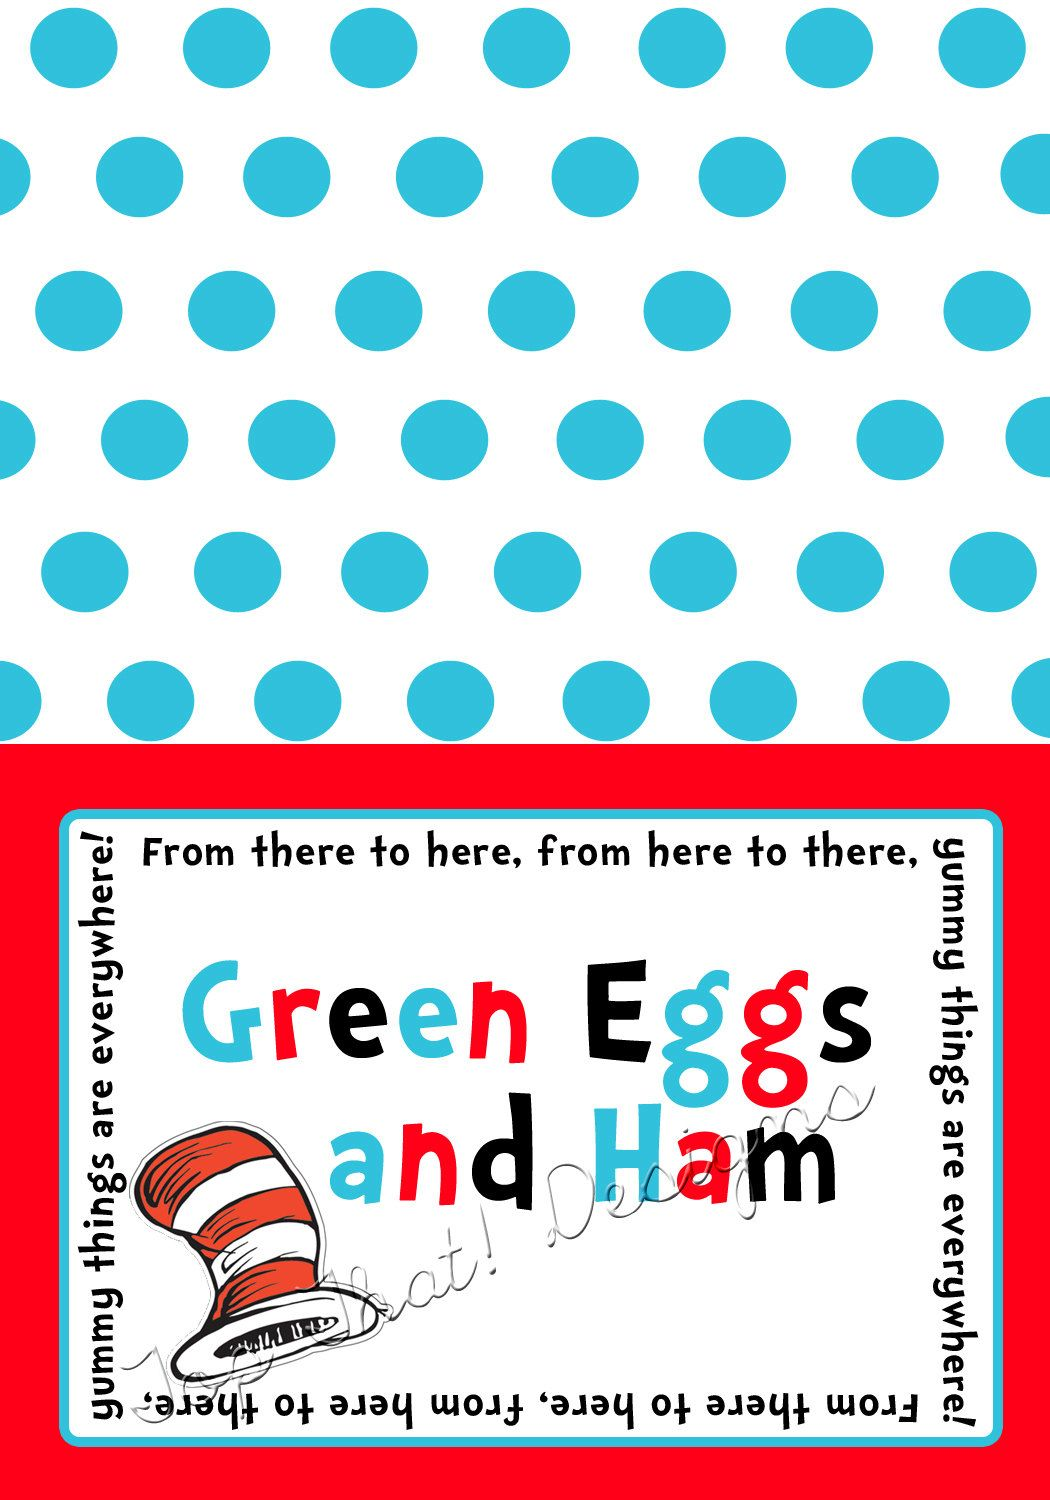 free dr seuss printables | Dr. Seuss Food Labels/Tents Printable by jenleonardini on  sc 1 st  Pinterest & free dr seuss printables | Dr. Seuss Food Labels/Tents Printable ...